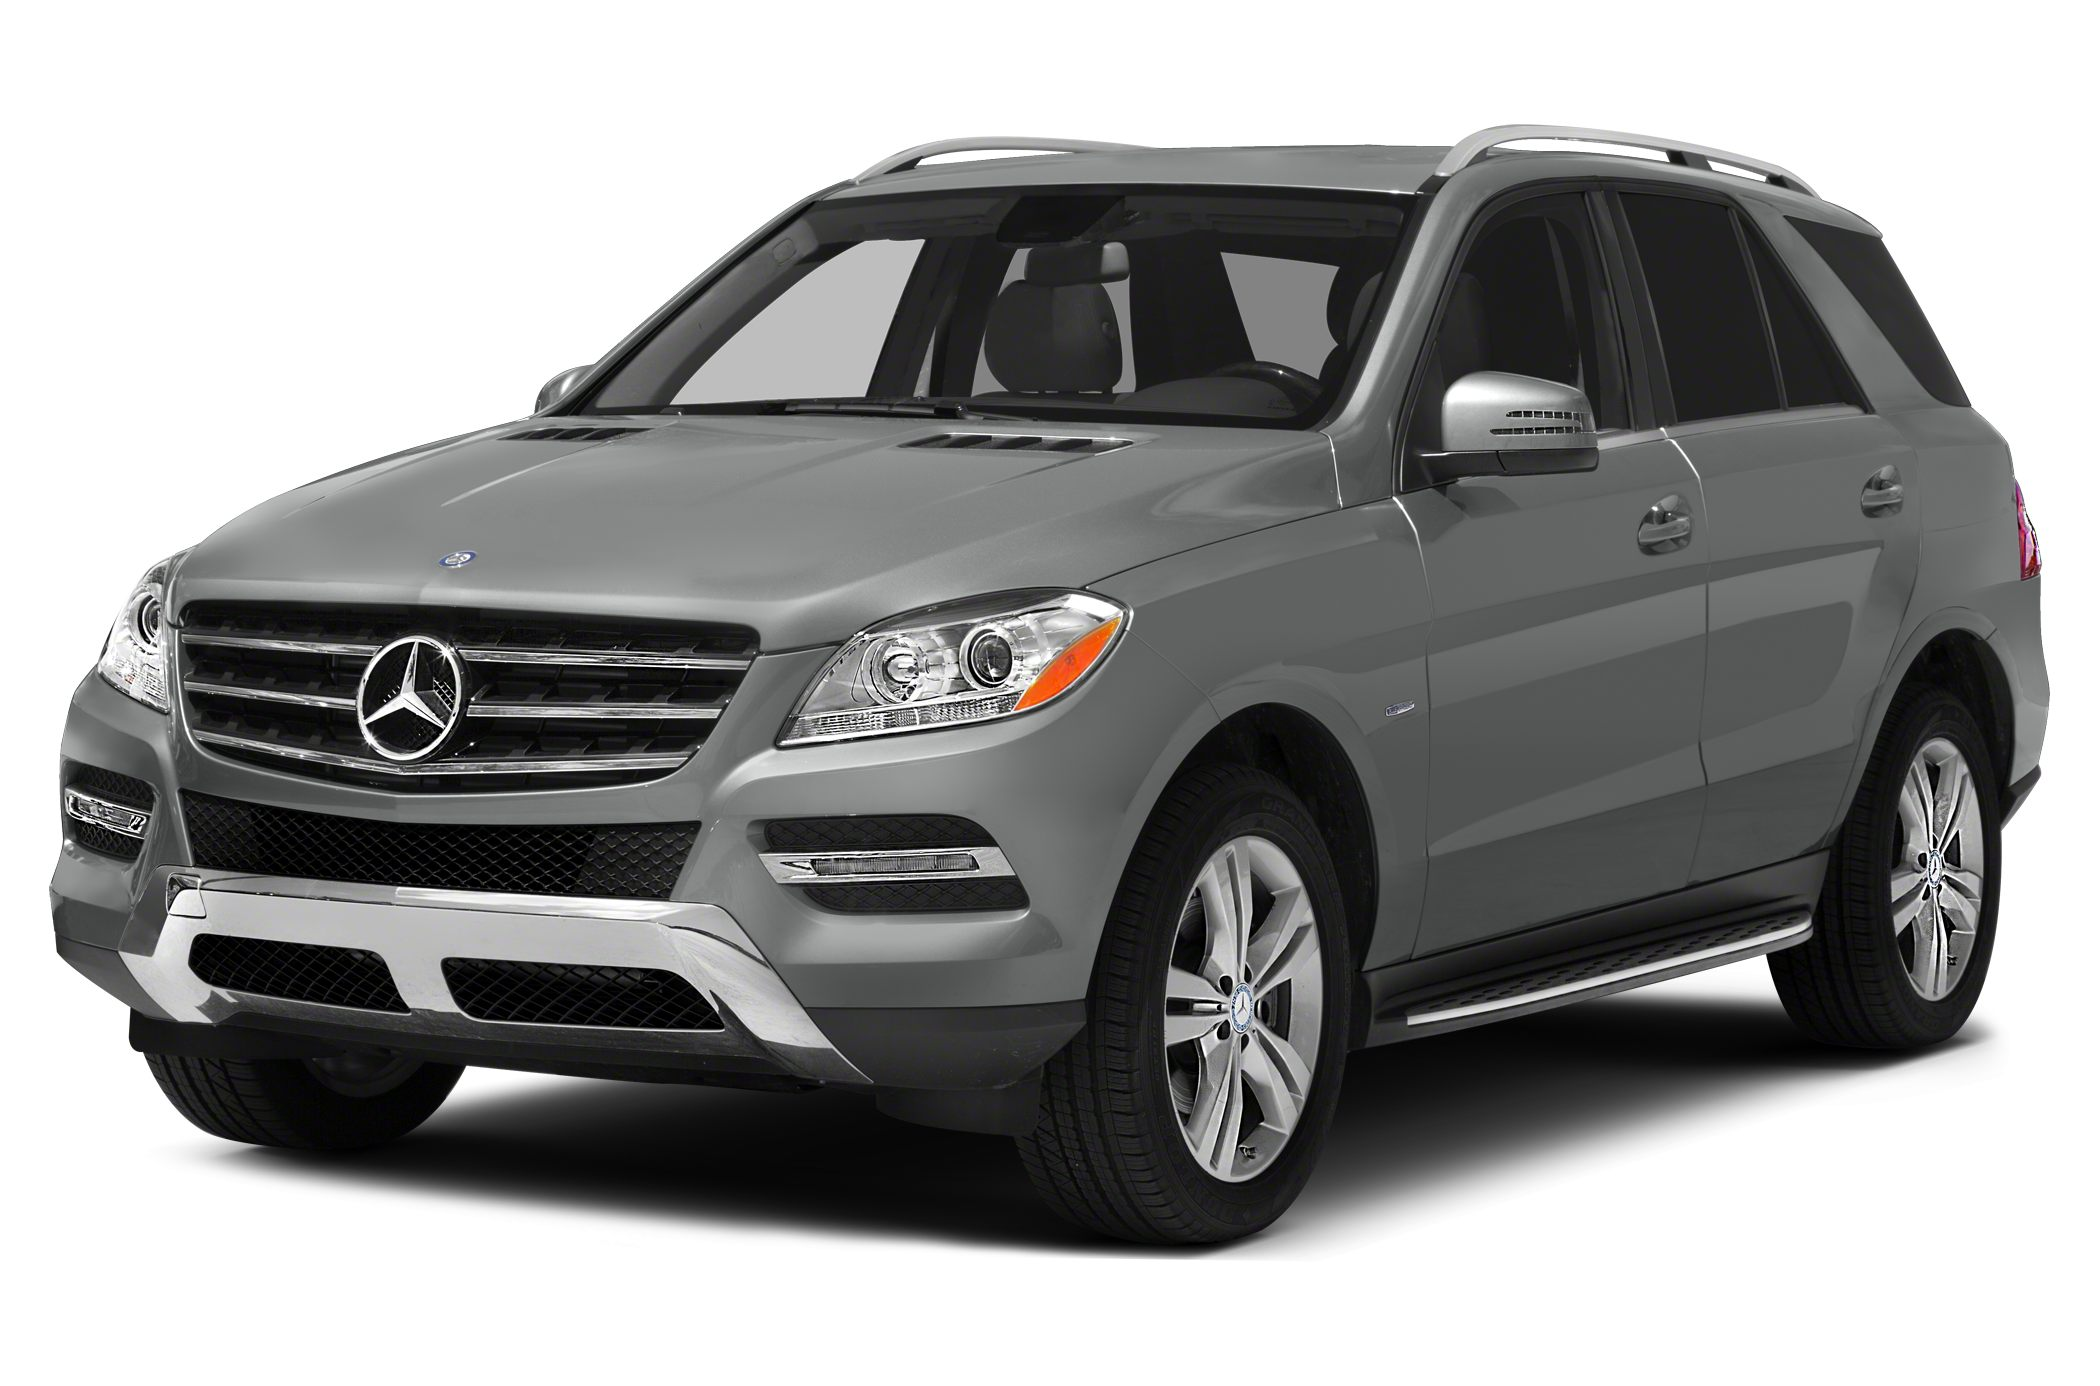 2015 Mercedes-Benz M-Class ML250 BlueTEC 4MATIC SUV for sale in Plano for $62,695 with 0 miles